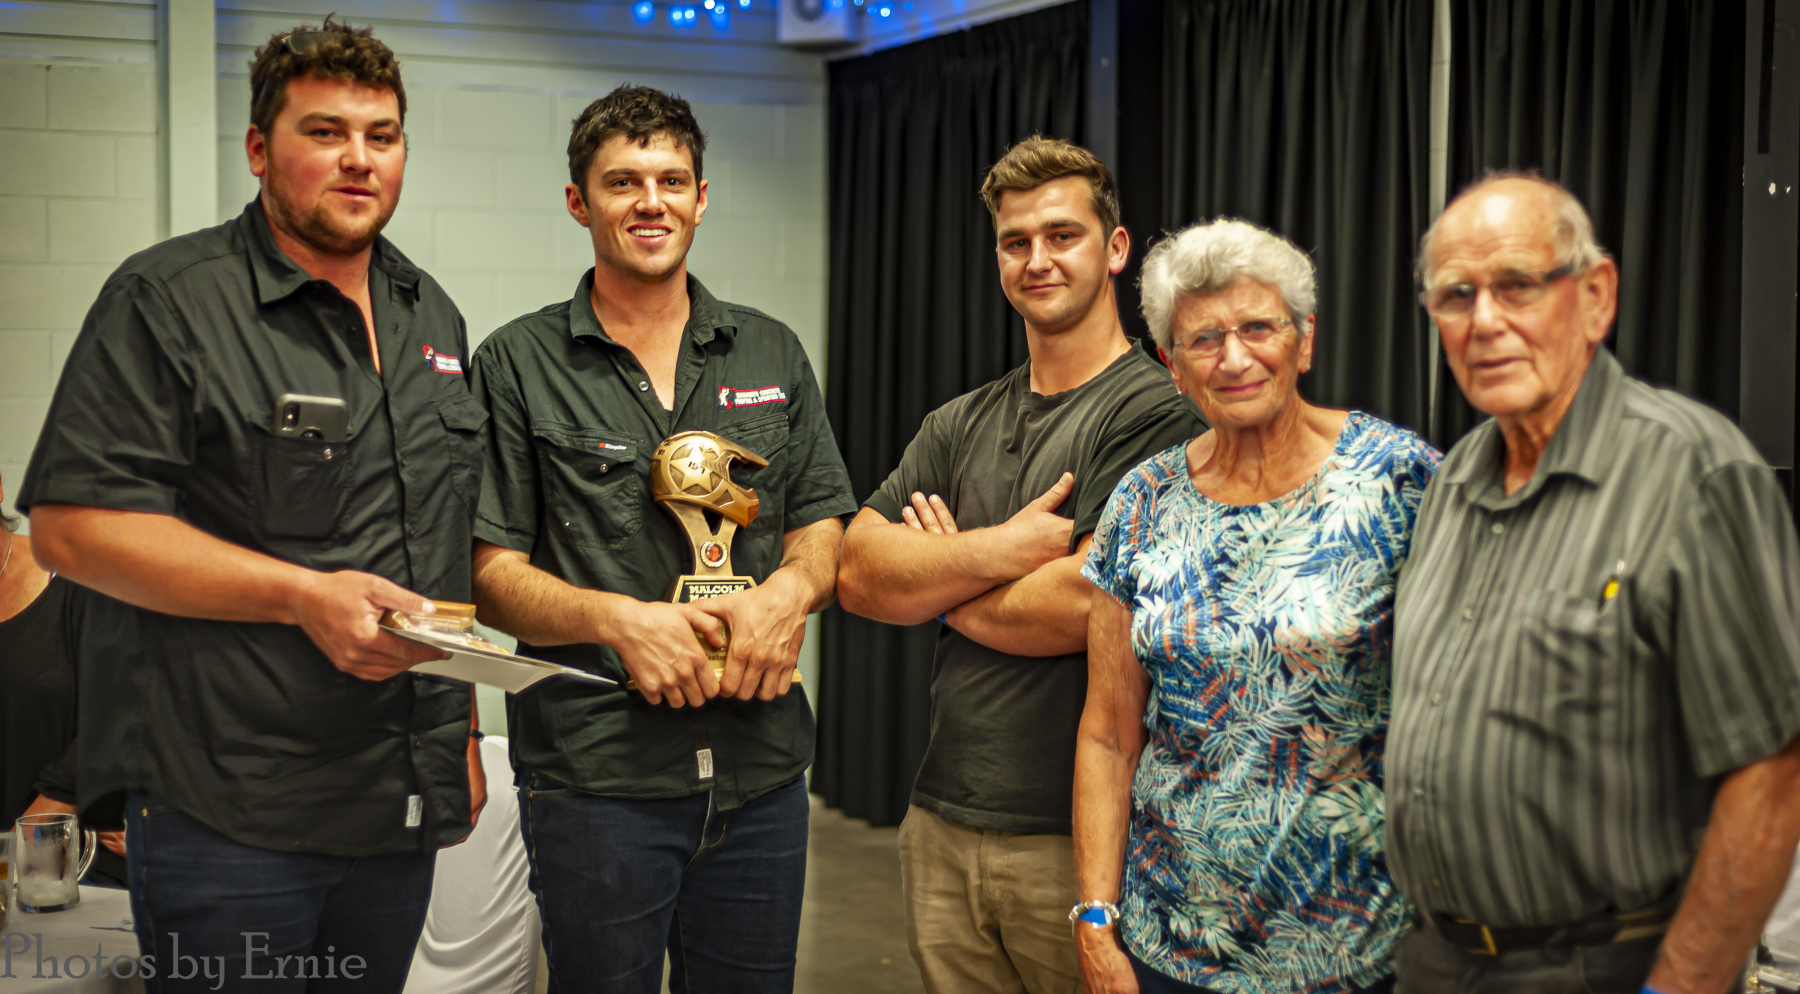 Malcolm McLeavey Memorial Trophy for 1st C Class in Central Zone: Jamie Elms & Mitchell Caldow, awarded by Ayden, Lorraine & Keith McLeavey